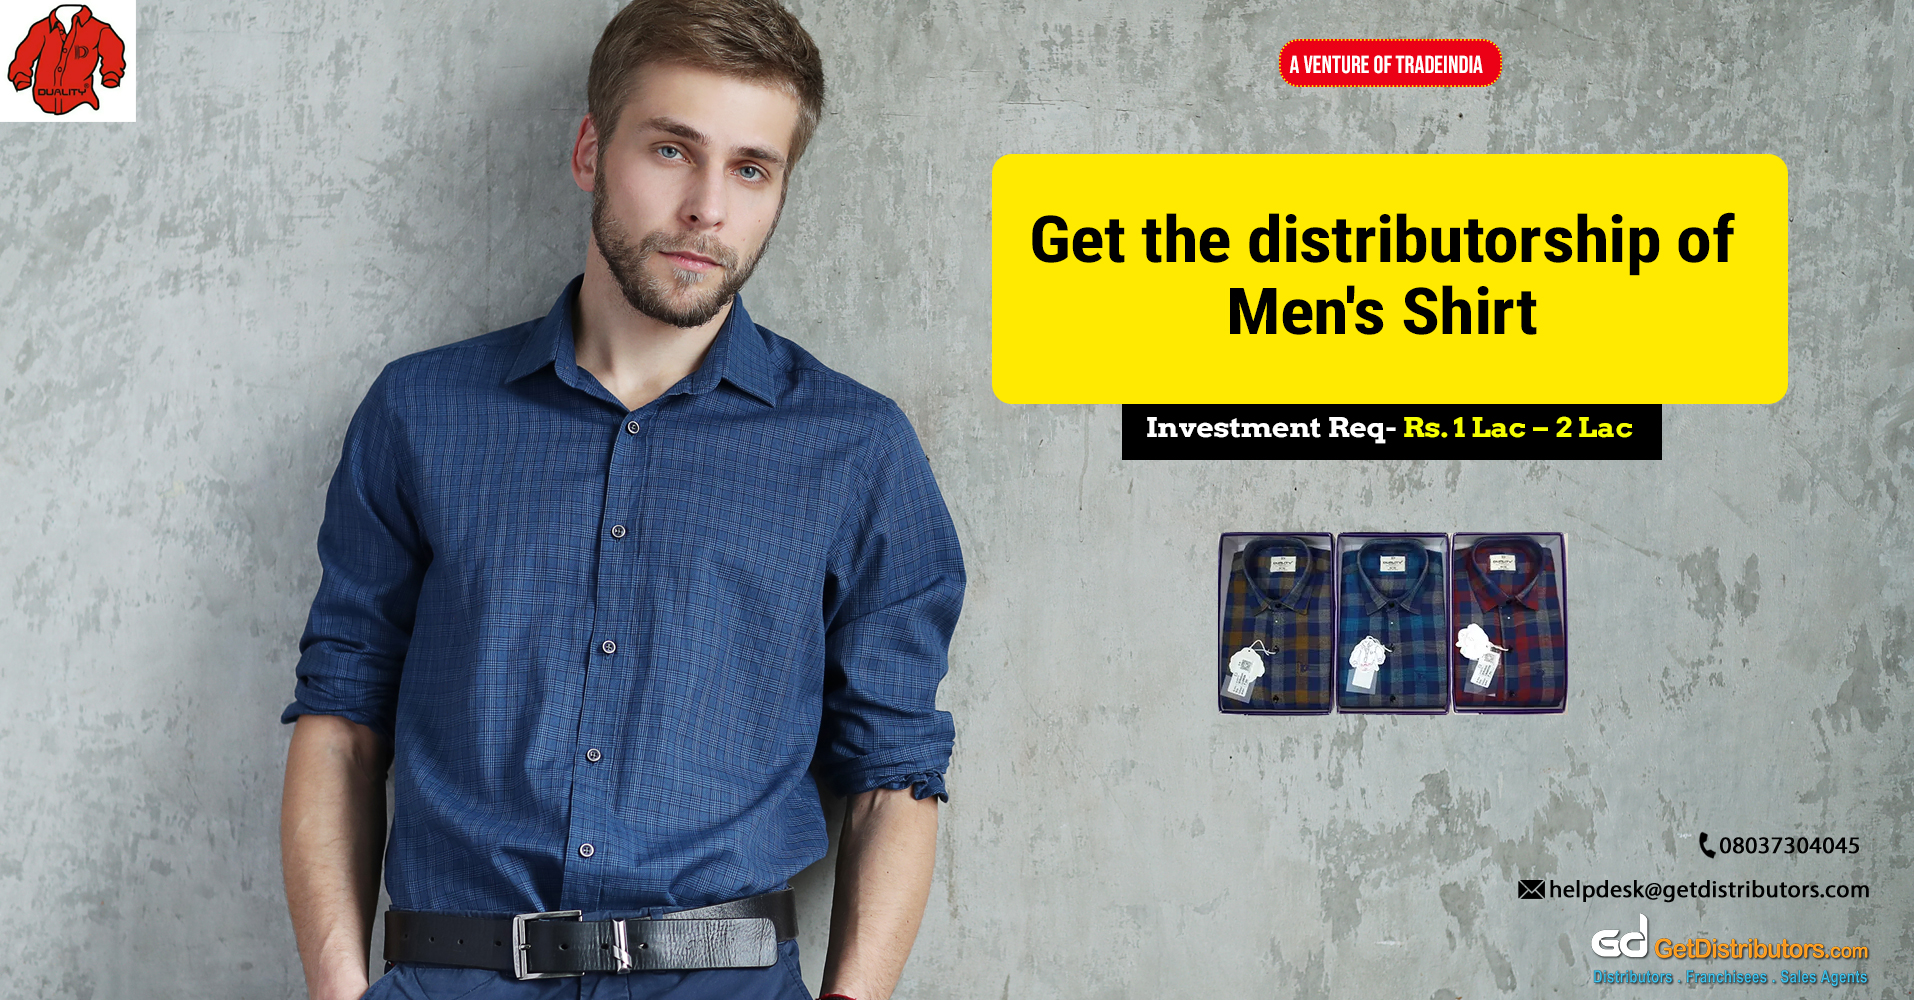 Distributorship of high-quality shirts